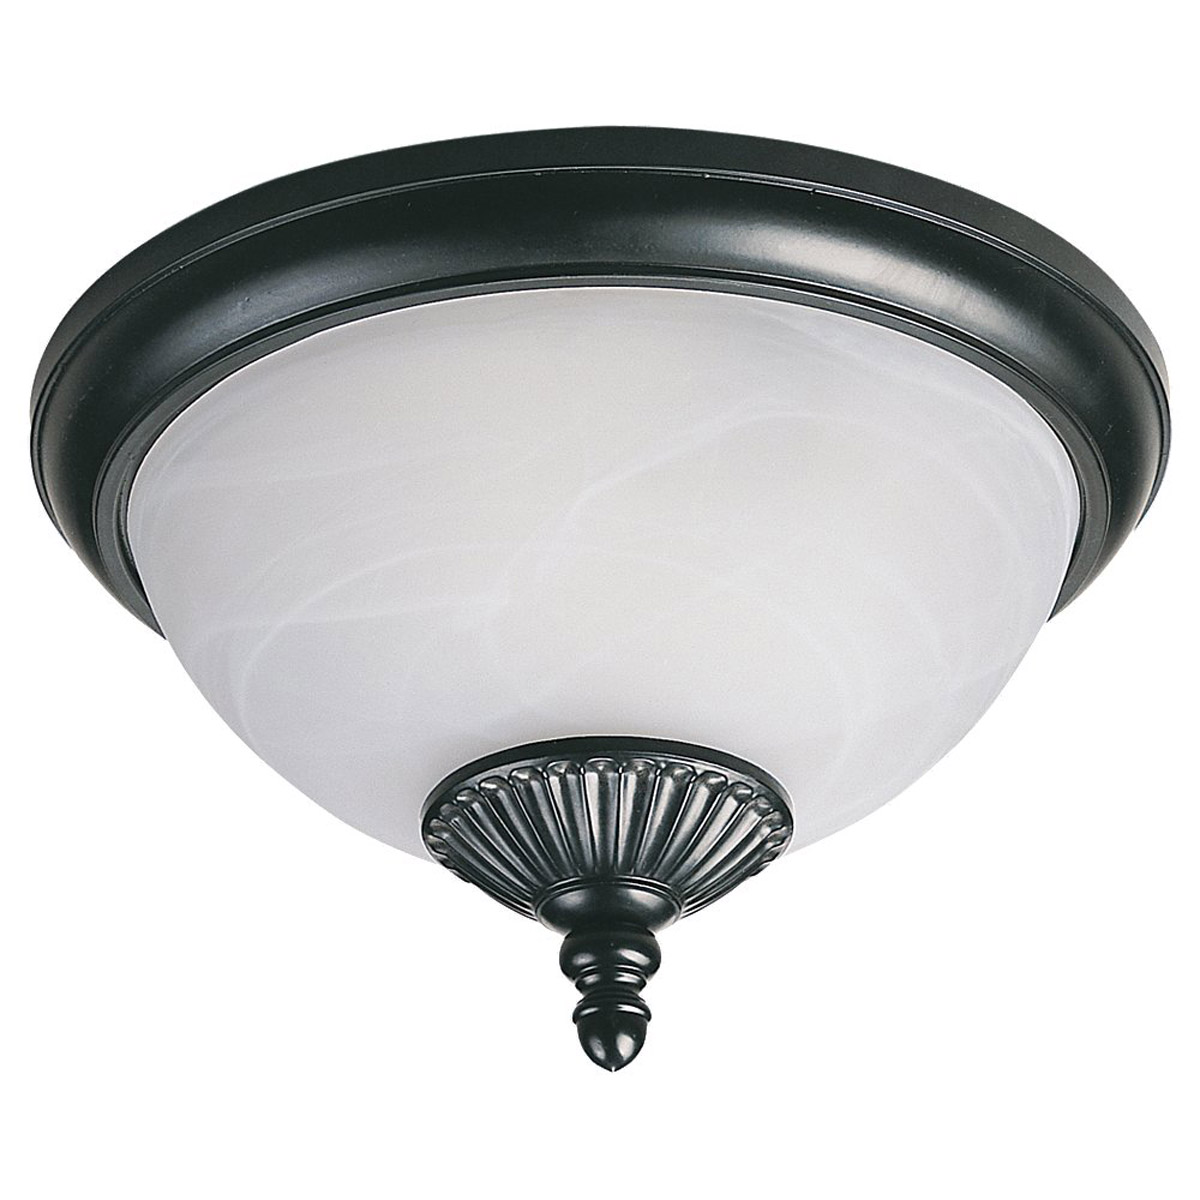 Sea Gull LightingYorktown 2 Light Outdoor Flush Mount in Black 89248PBLE-12 photo